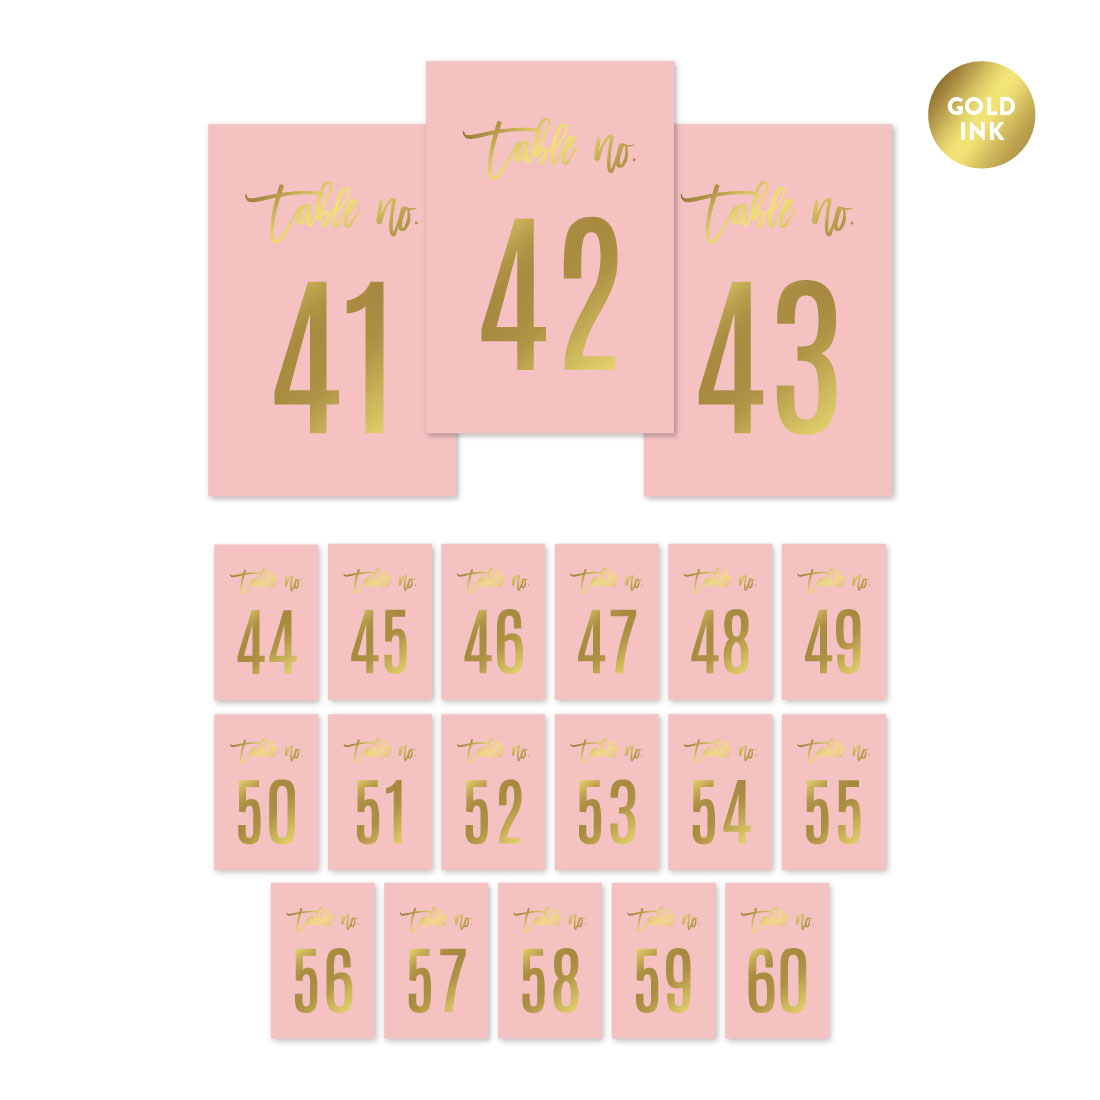 Blush Pink and Metallic Gold Confetti Polka Dots, Table Numbers 41 - 60 on Perforated Paper, Single-Sided, 4 x 6-inch